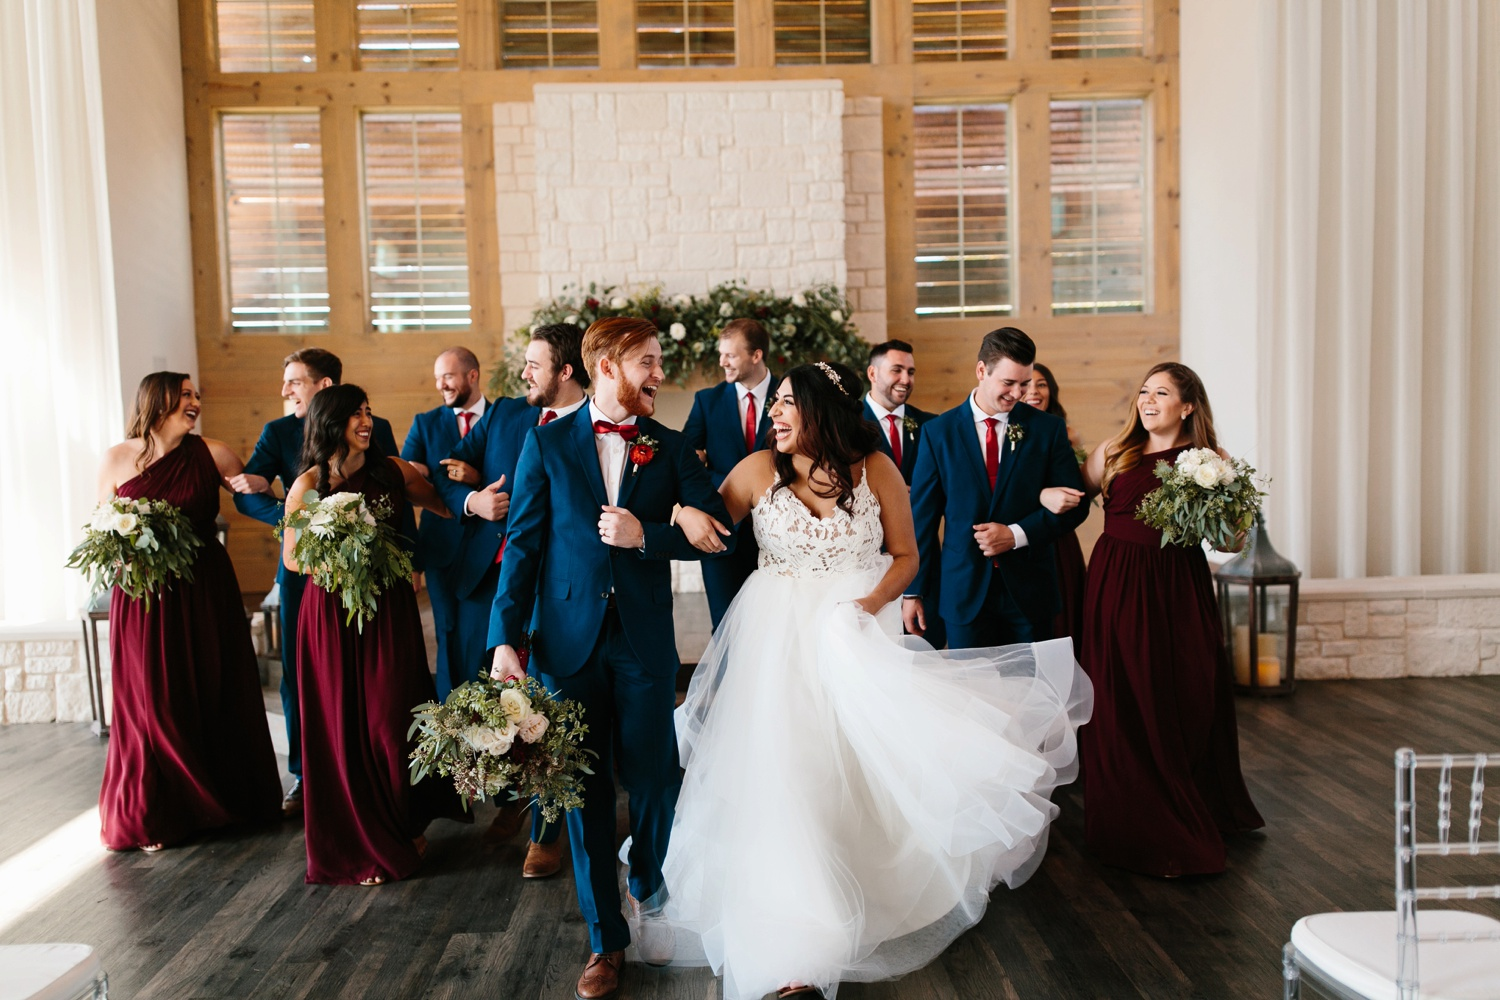 Grant + Lysette | a vibrant, deep burgundy and navy, and mixed metals wedding at Hidden Pines Chapel by North Texas Wedding Photographer Rachel Meagan Photography 124